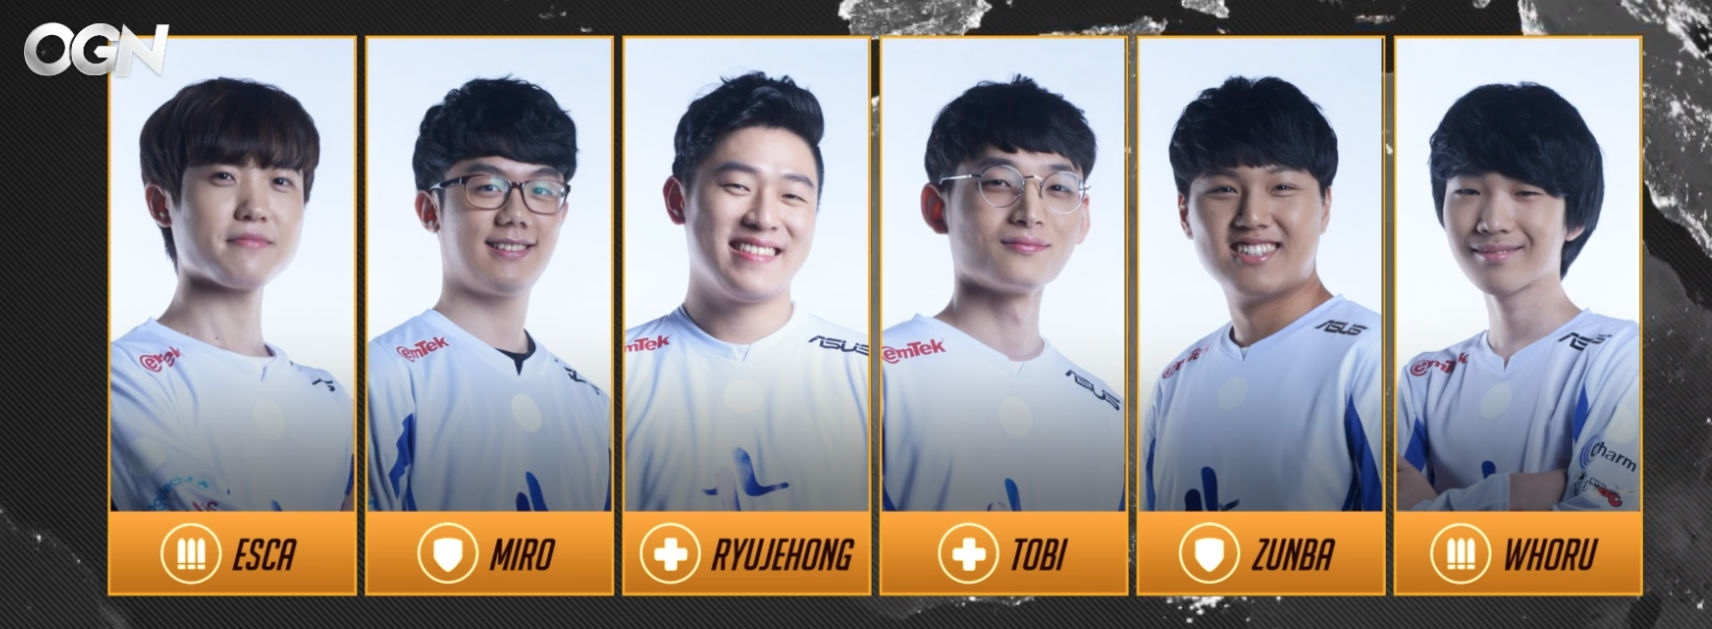 Lunatic-Hai, next top NA team?